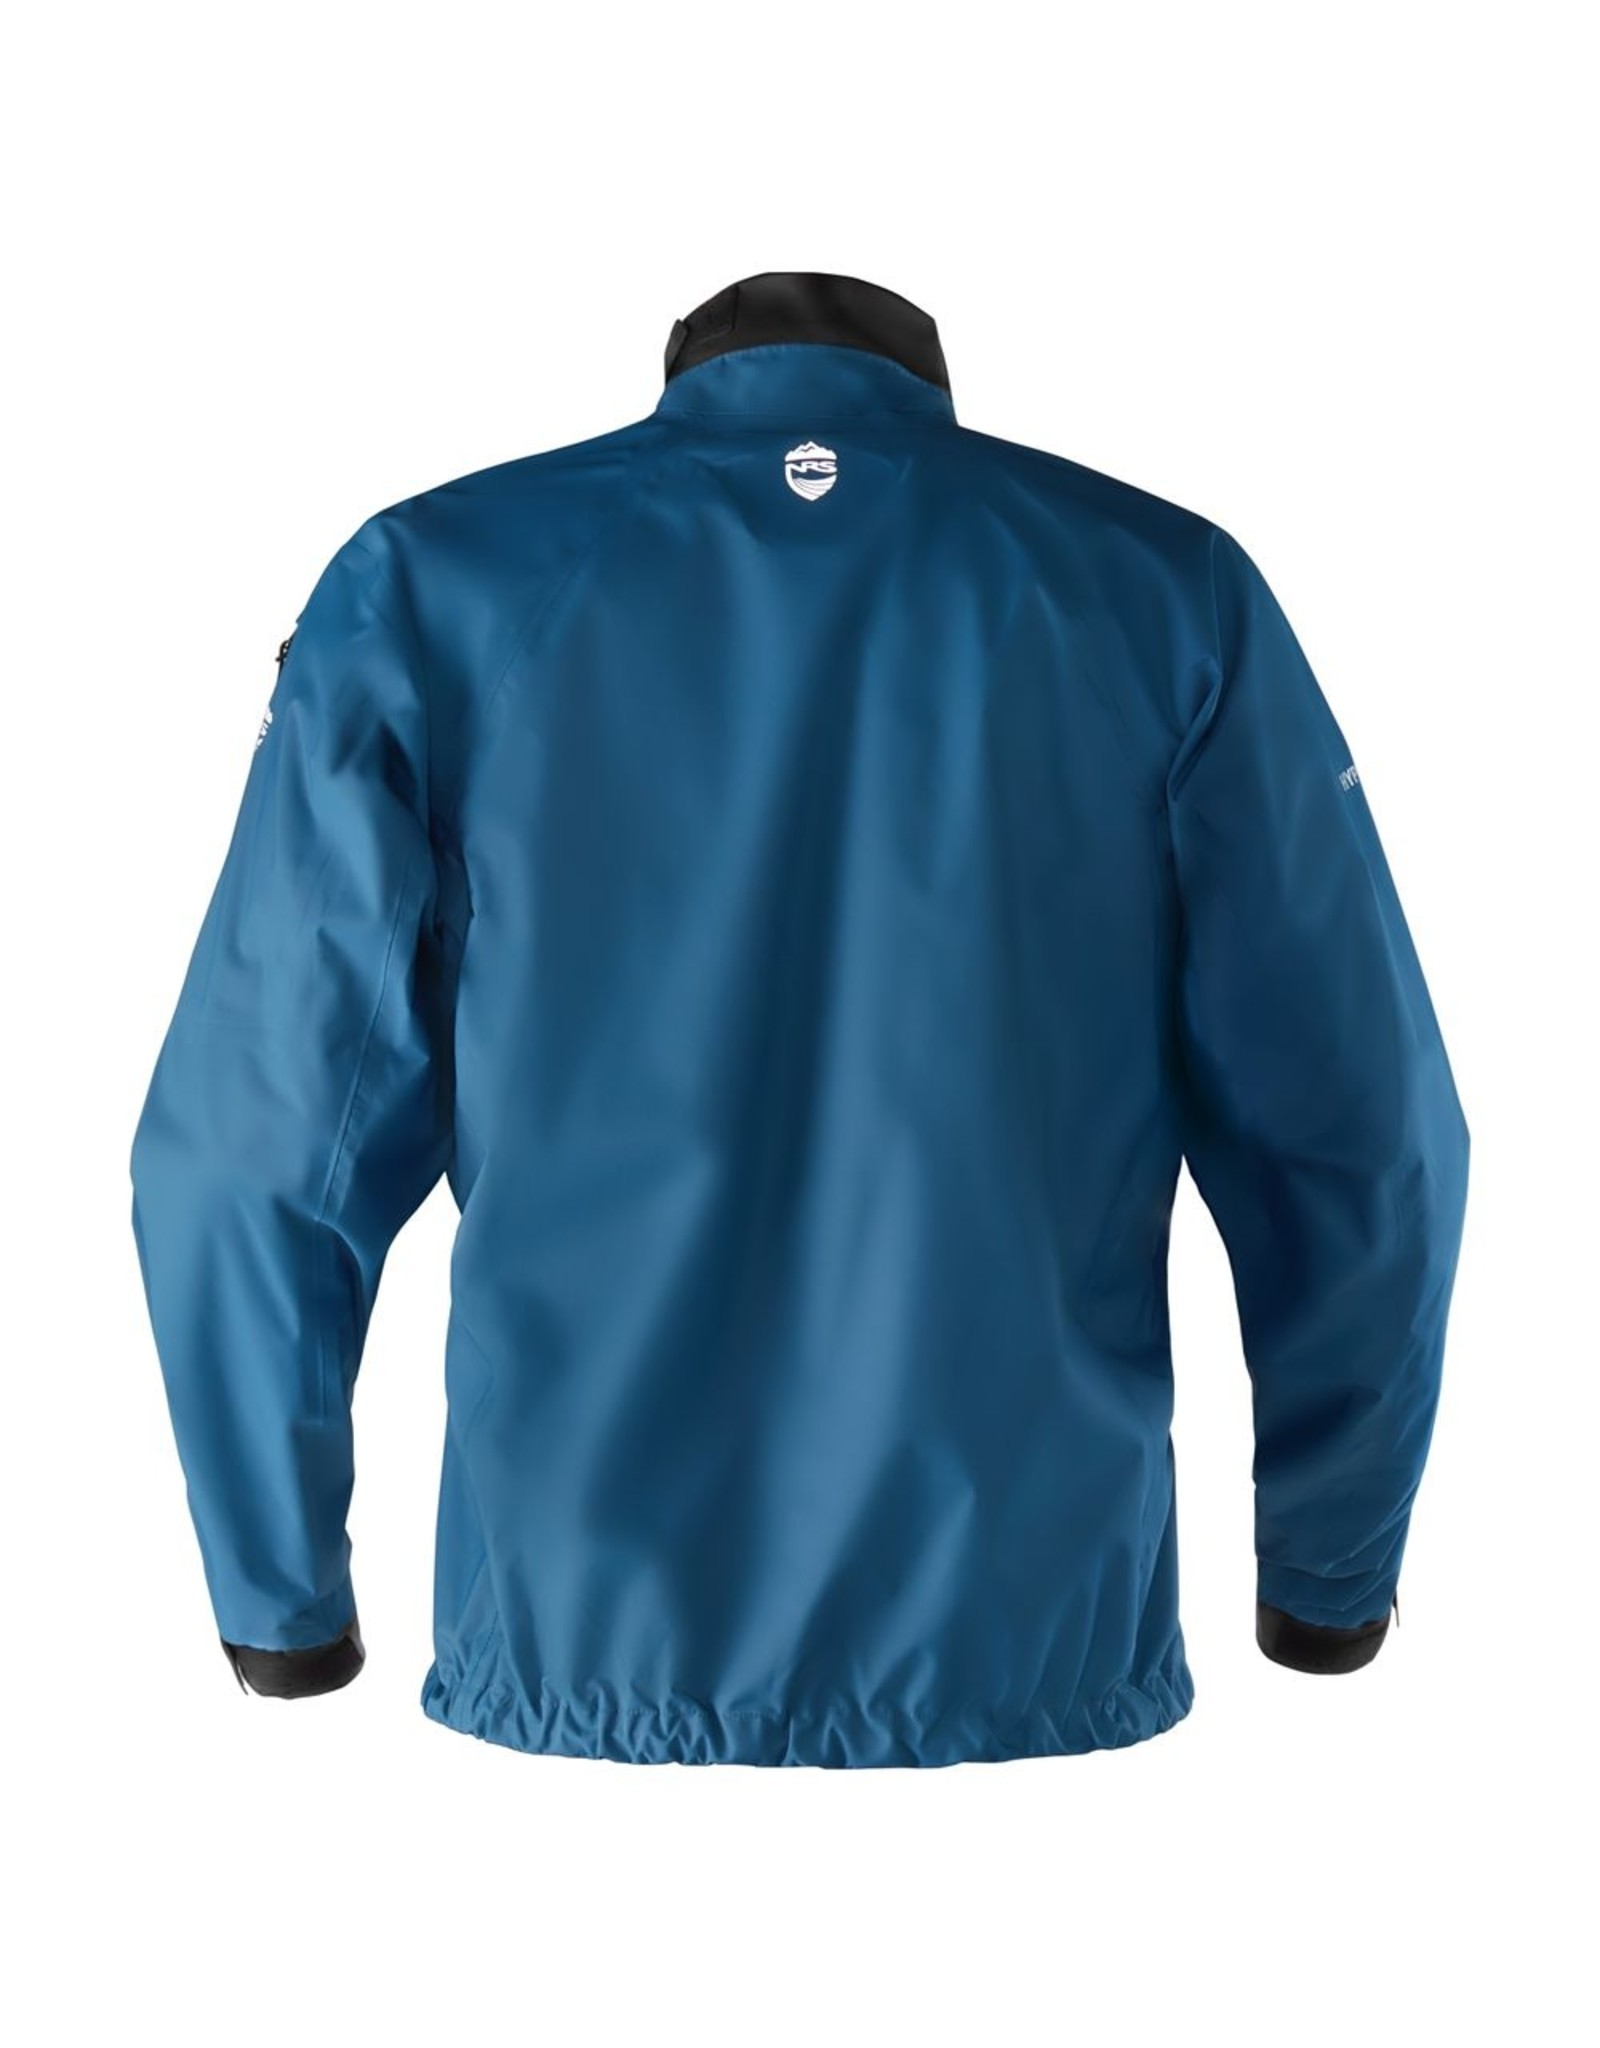 NRS NRS Men's Endurance Splash Jacket